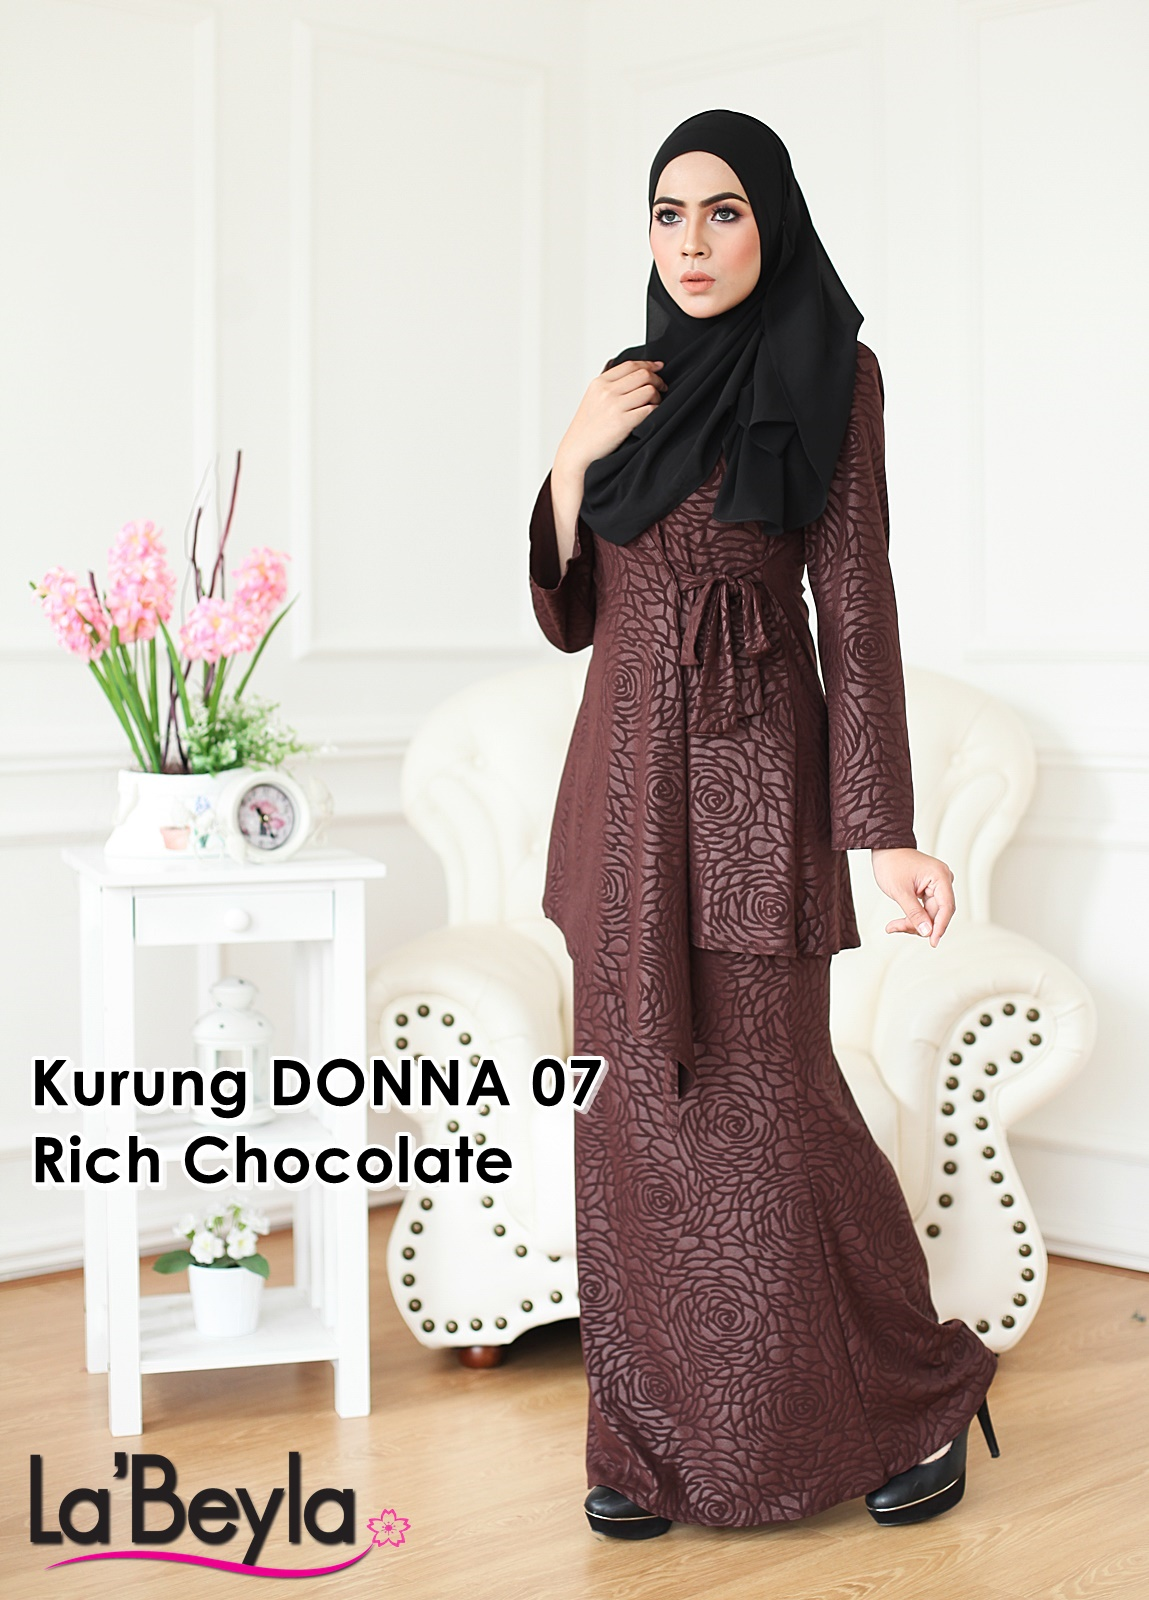 Kurung Donna 07 - Rich Chocolate